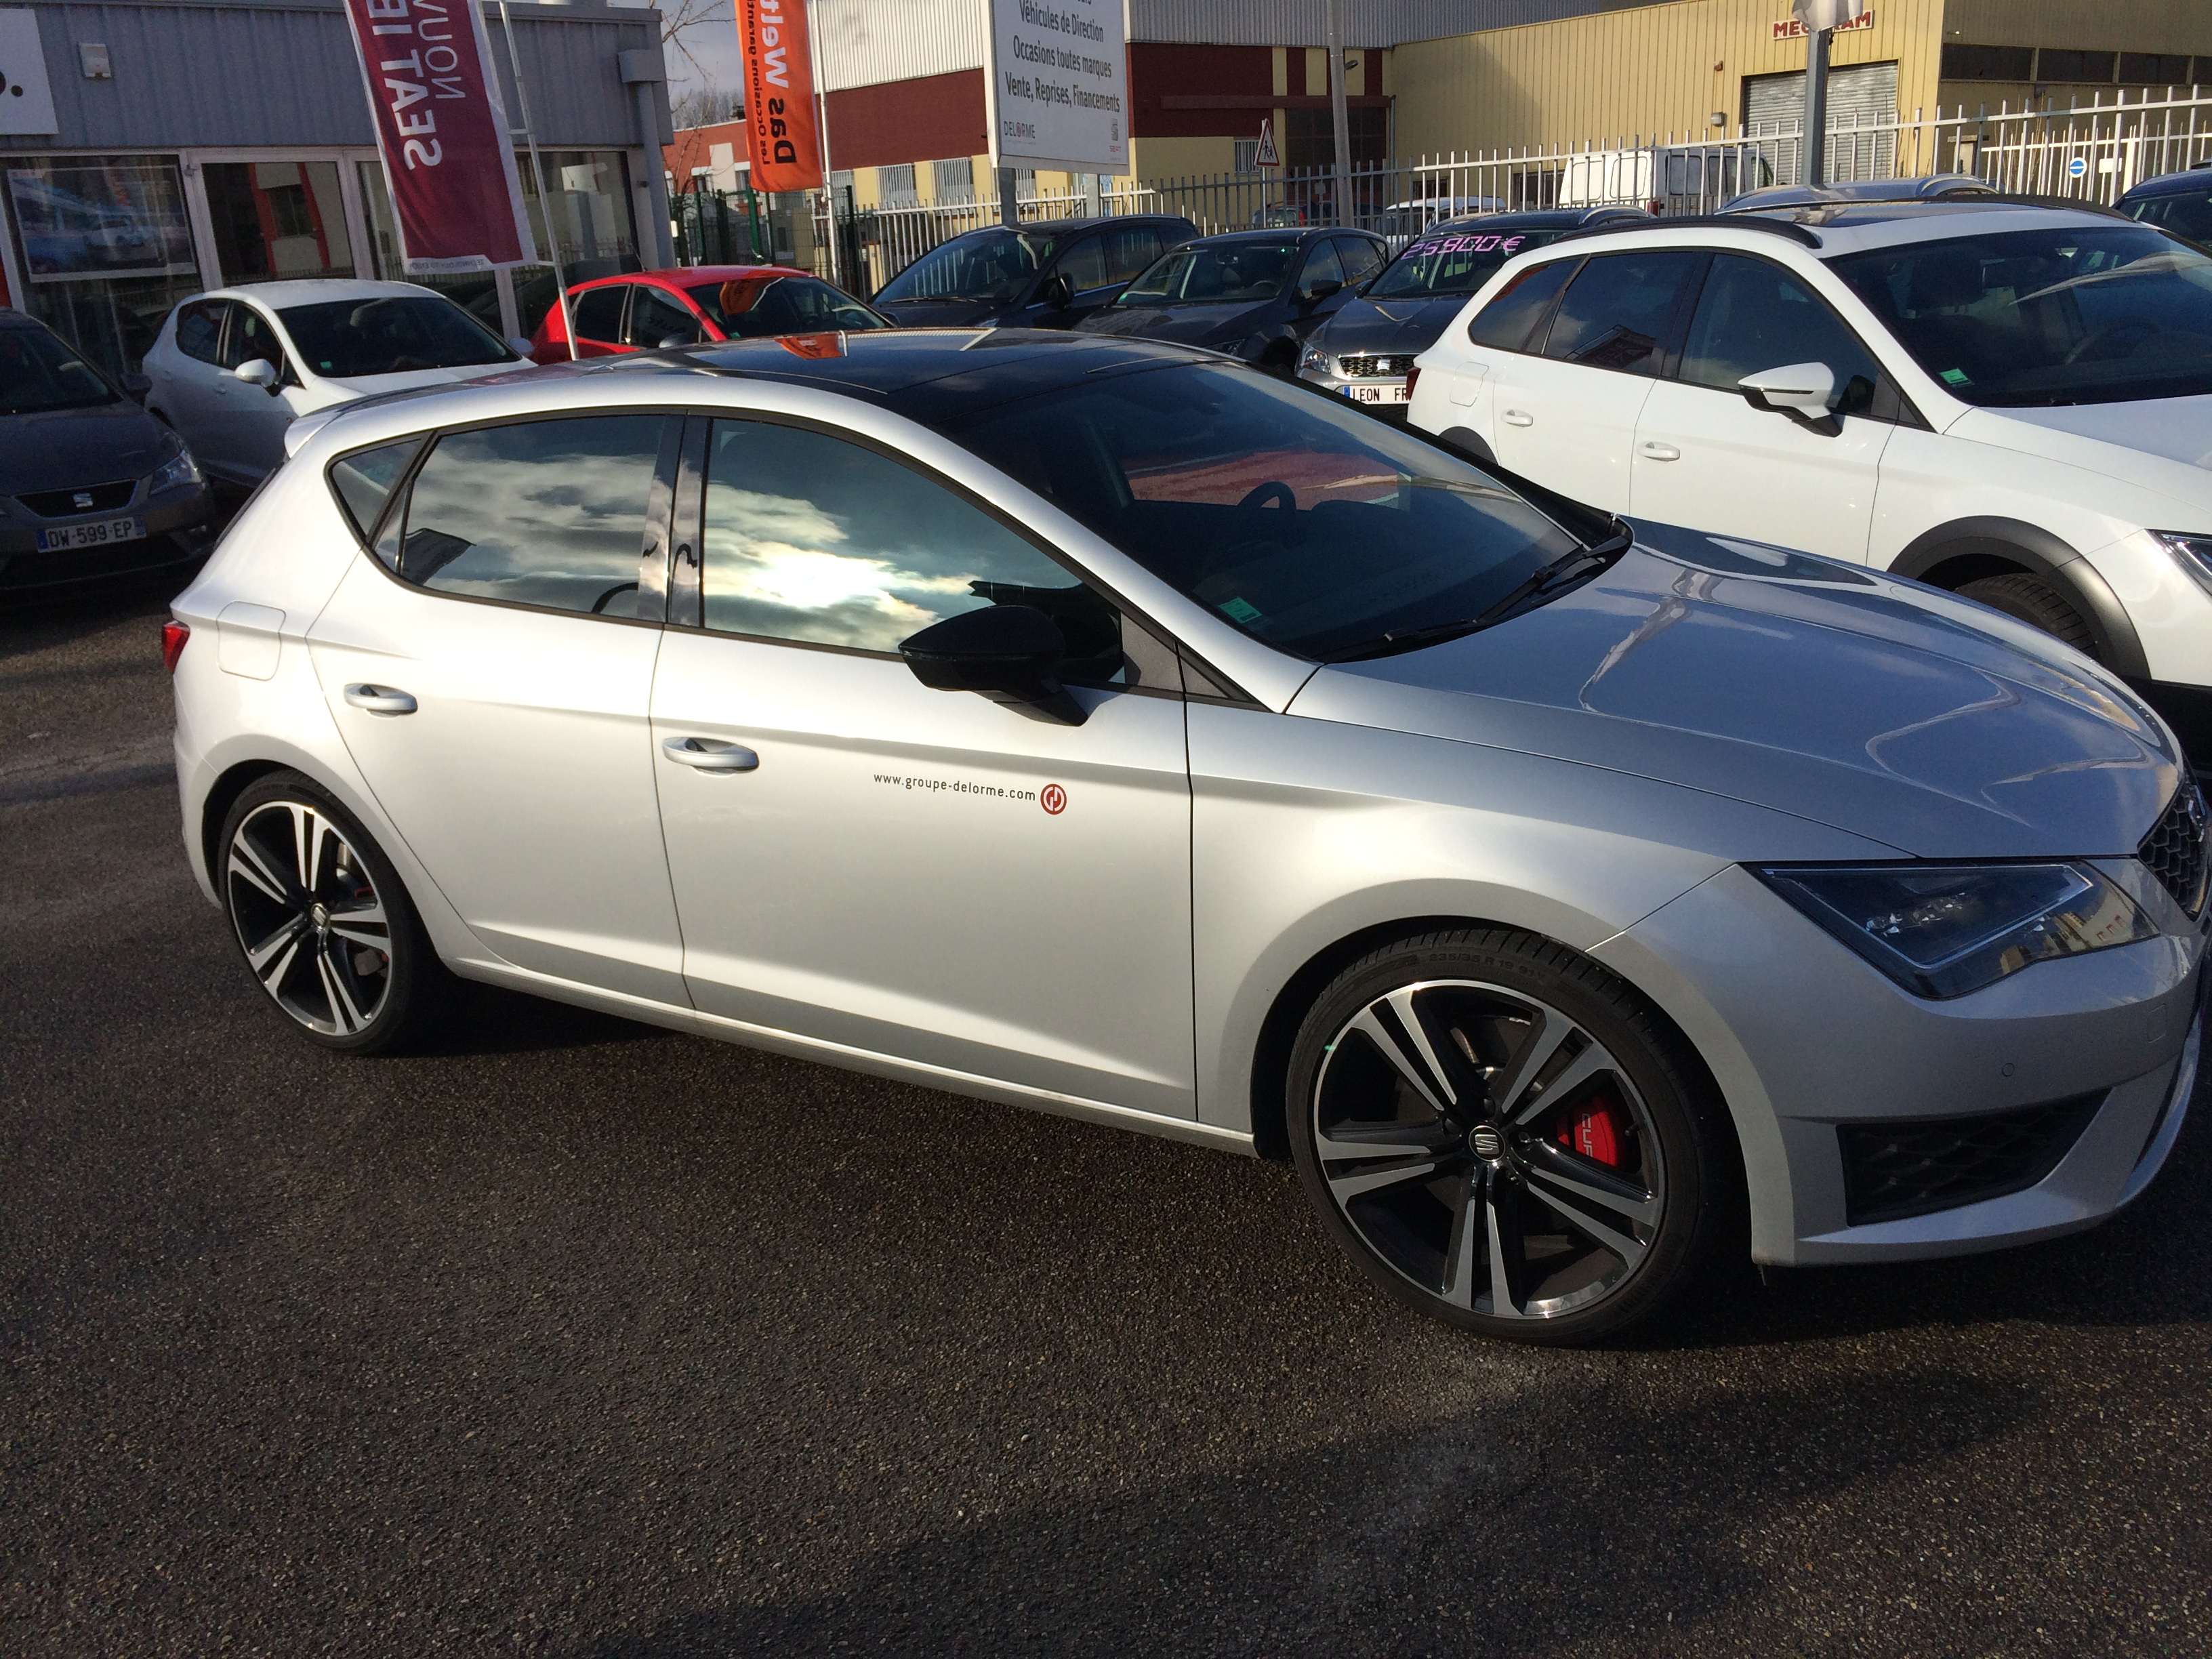 seat leon cupra 280 pr sentation seat forum marques. Black Bedroom Furniture Sets. Home Design Ideas